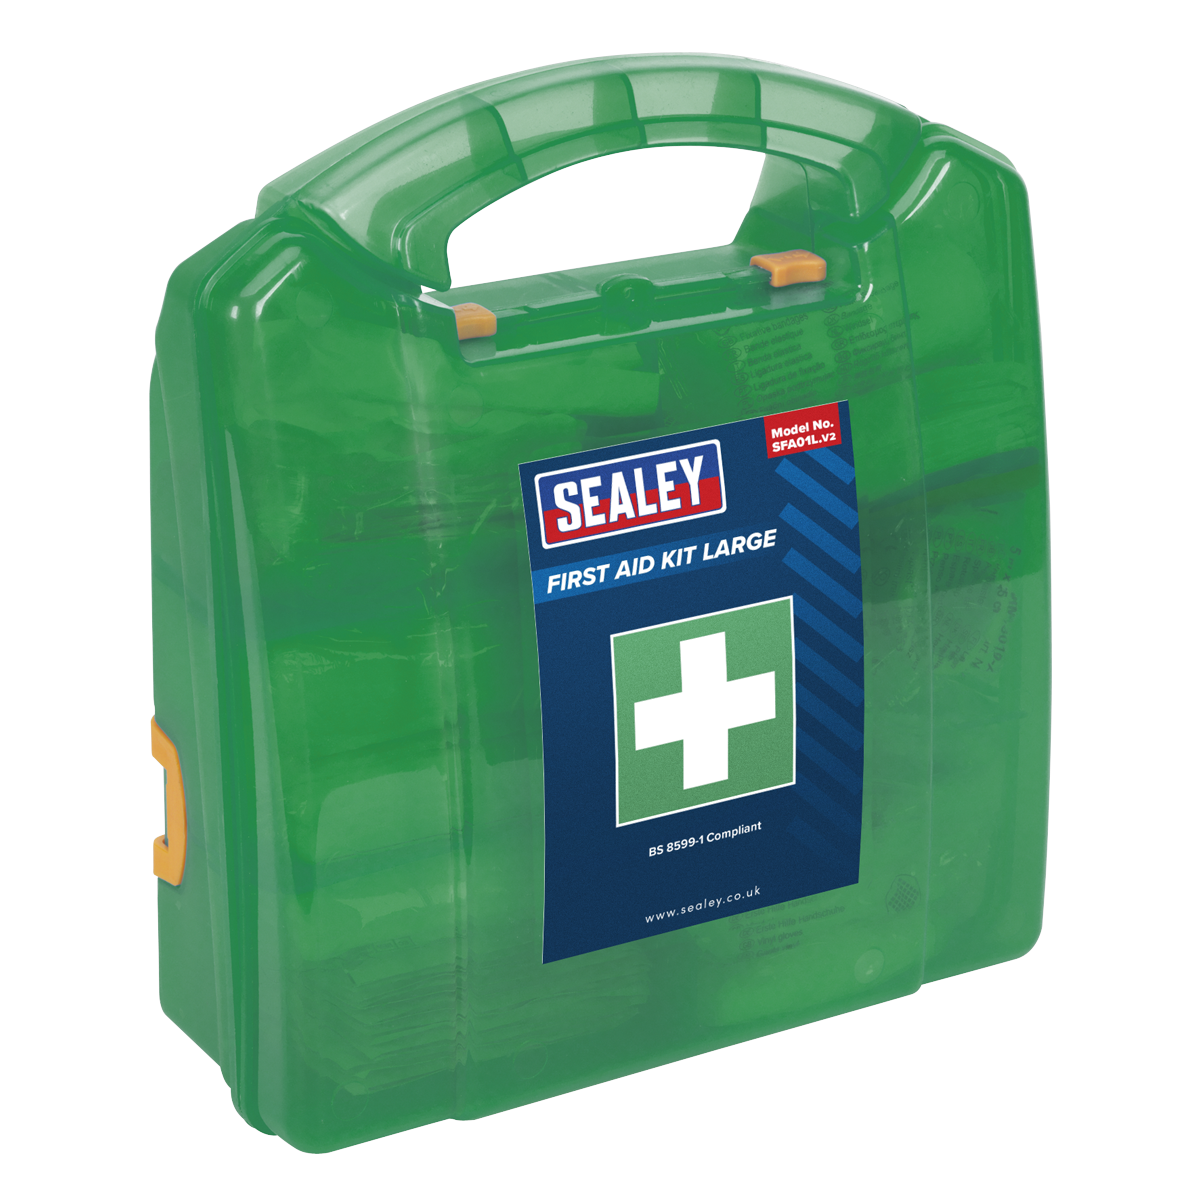 First Aid Kit Large - BS 8599-1 Compliant